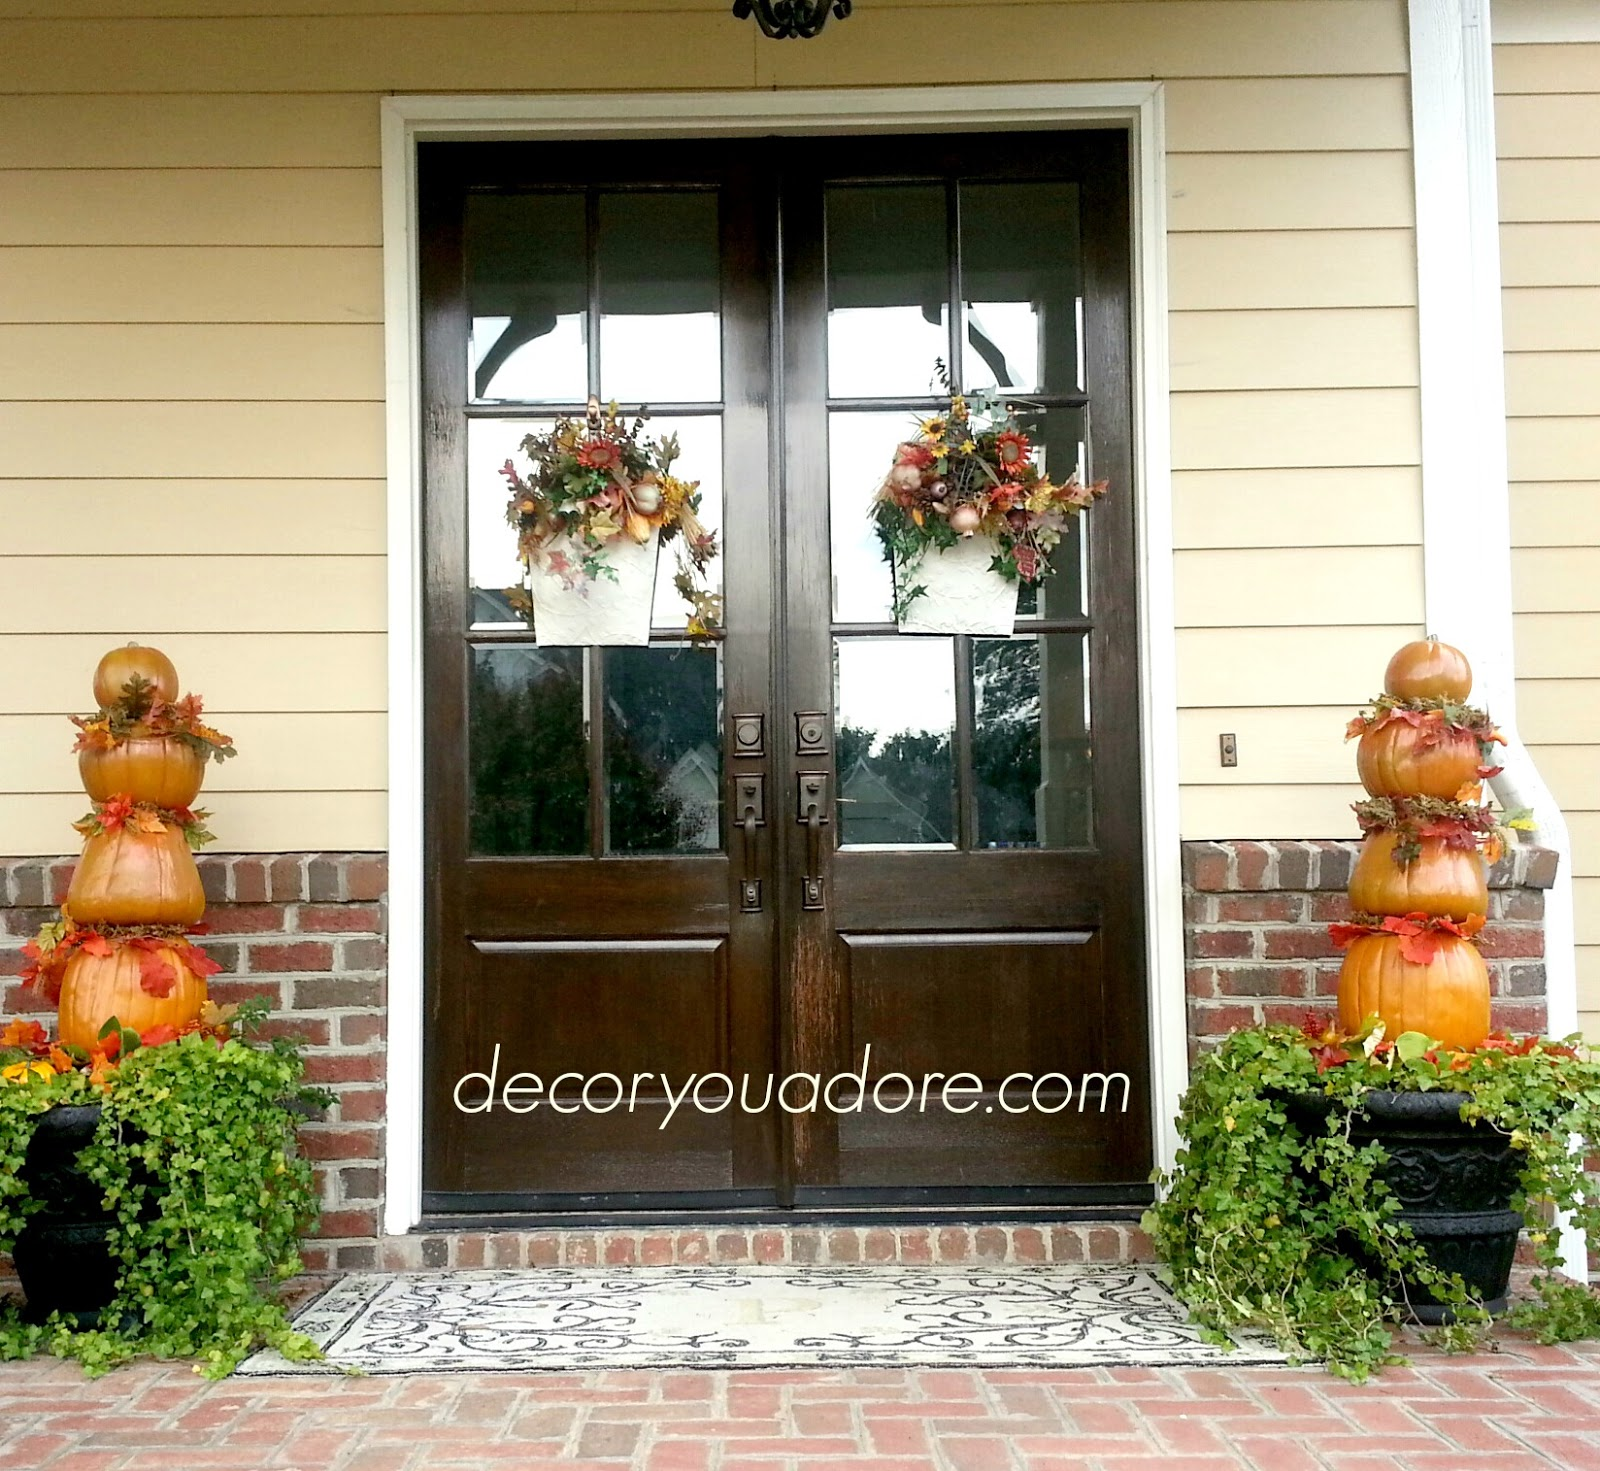 Hgtv Front Door Fall Decorations: Decor You Adore: The Lazy Girl's Guide To Easy Fall Decorating